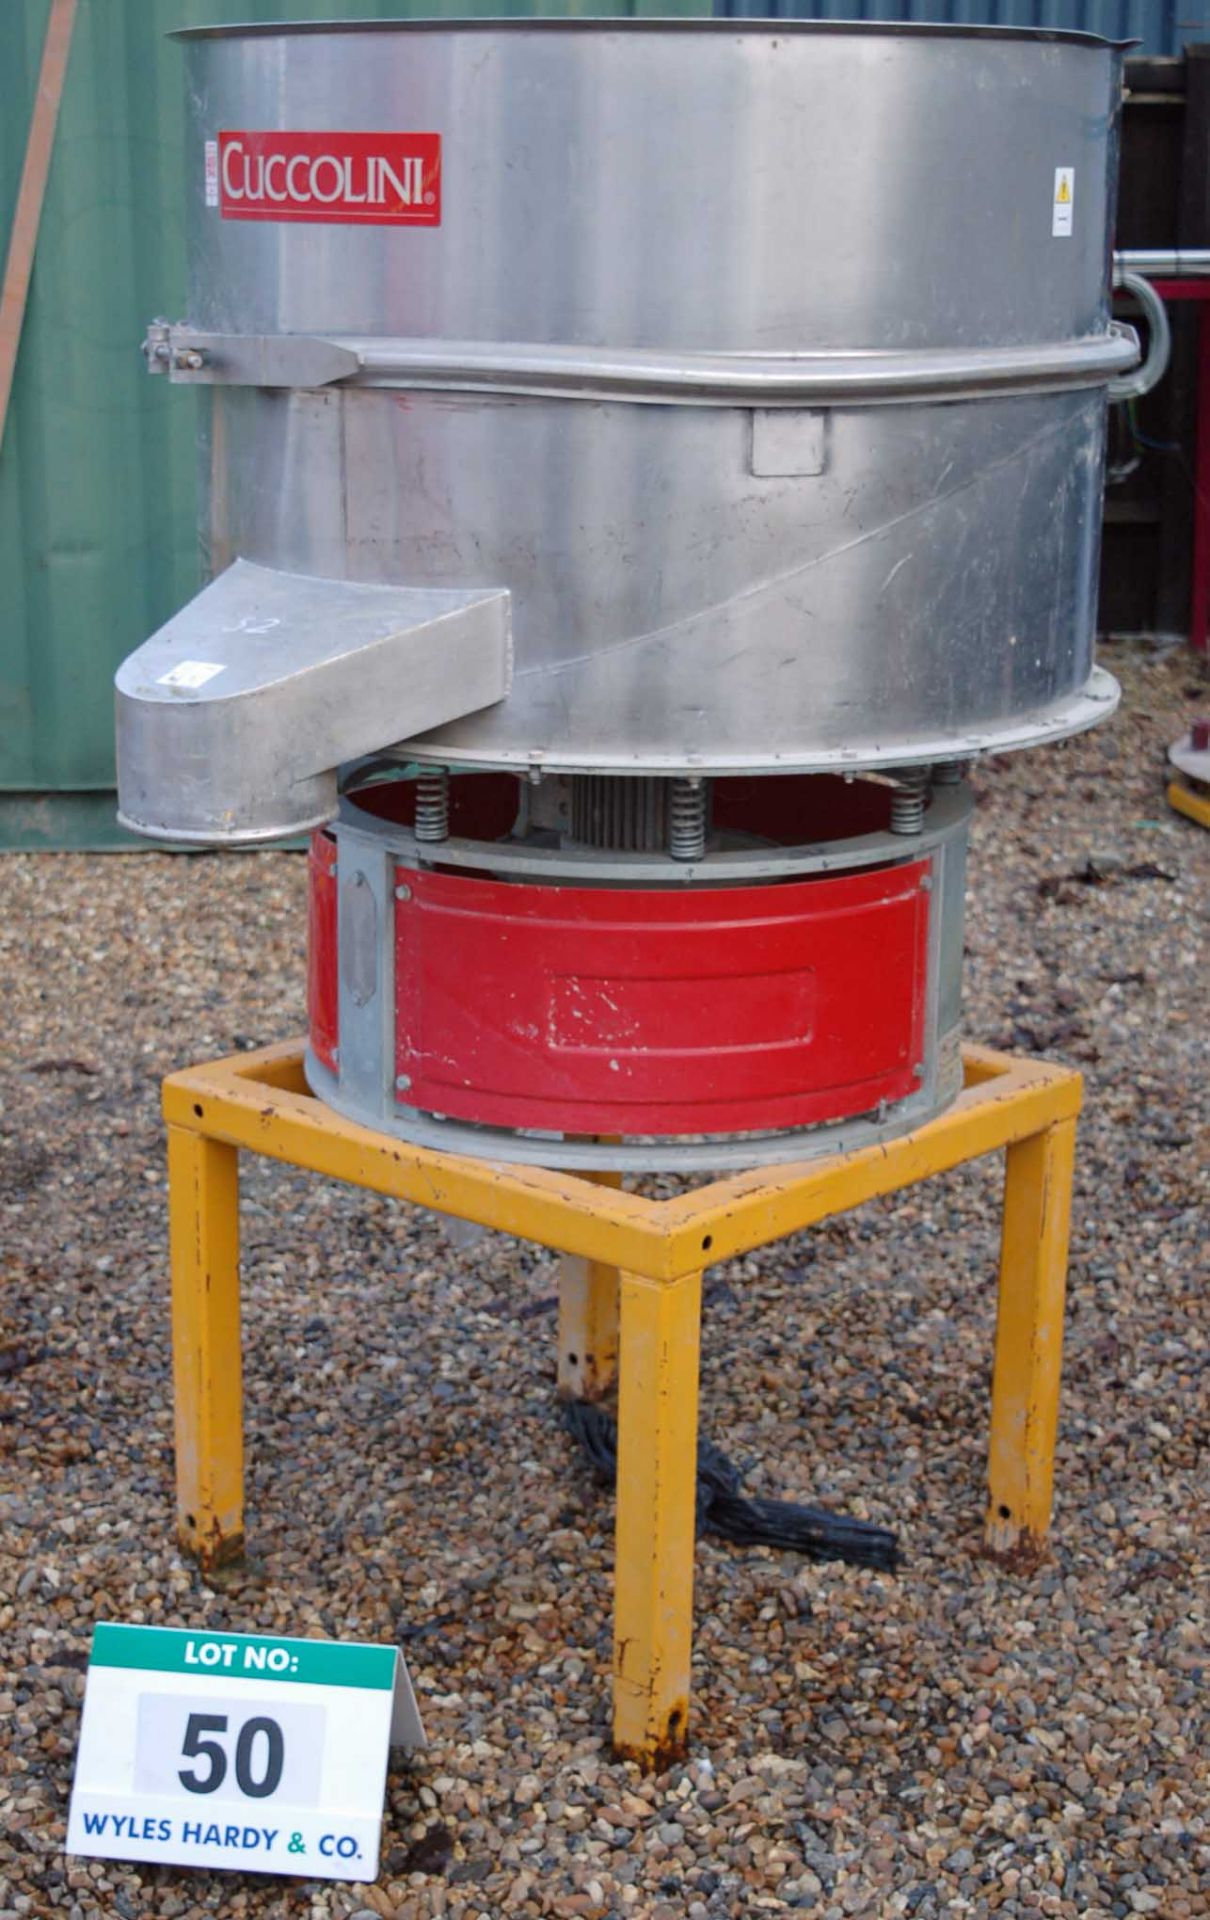 Lot 50 - A CUCCOLINI VPM 900 1X 900MM Dia VIBRATORY Drum Sieve on Fabricated Steel Stand. Seral Number: